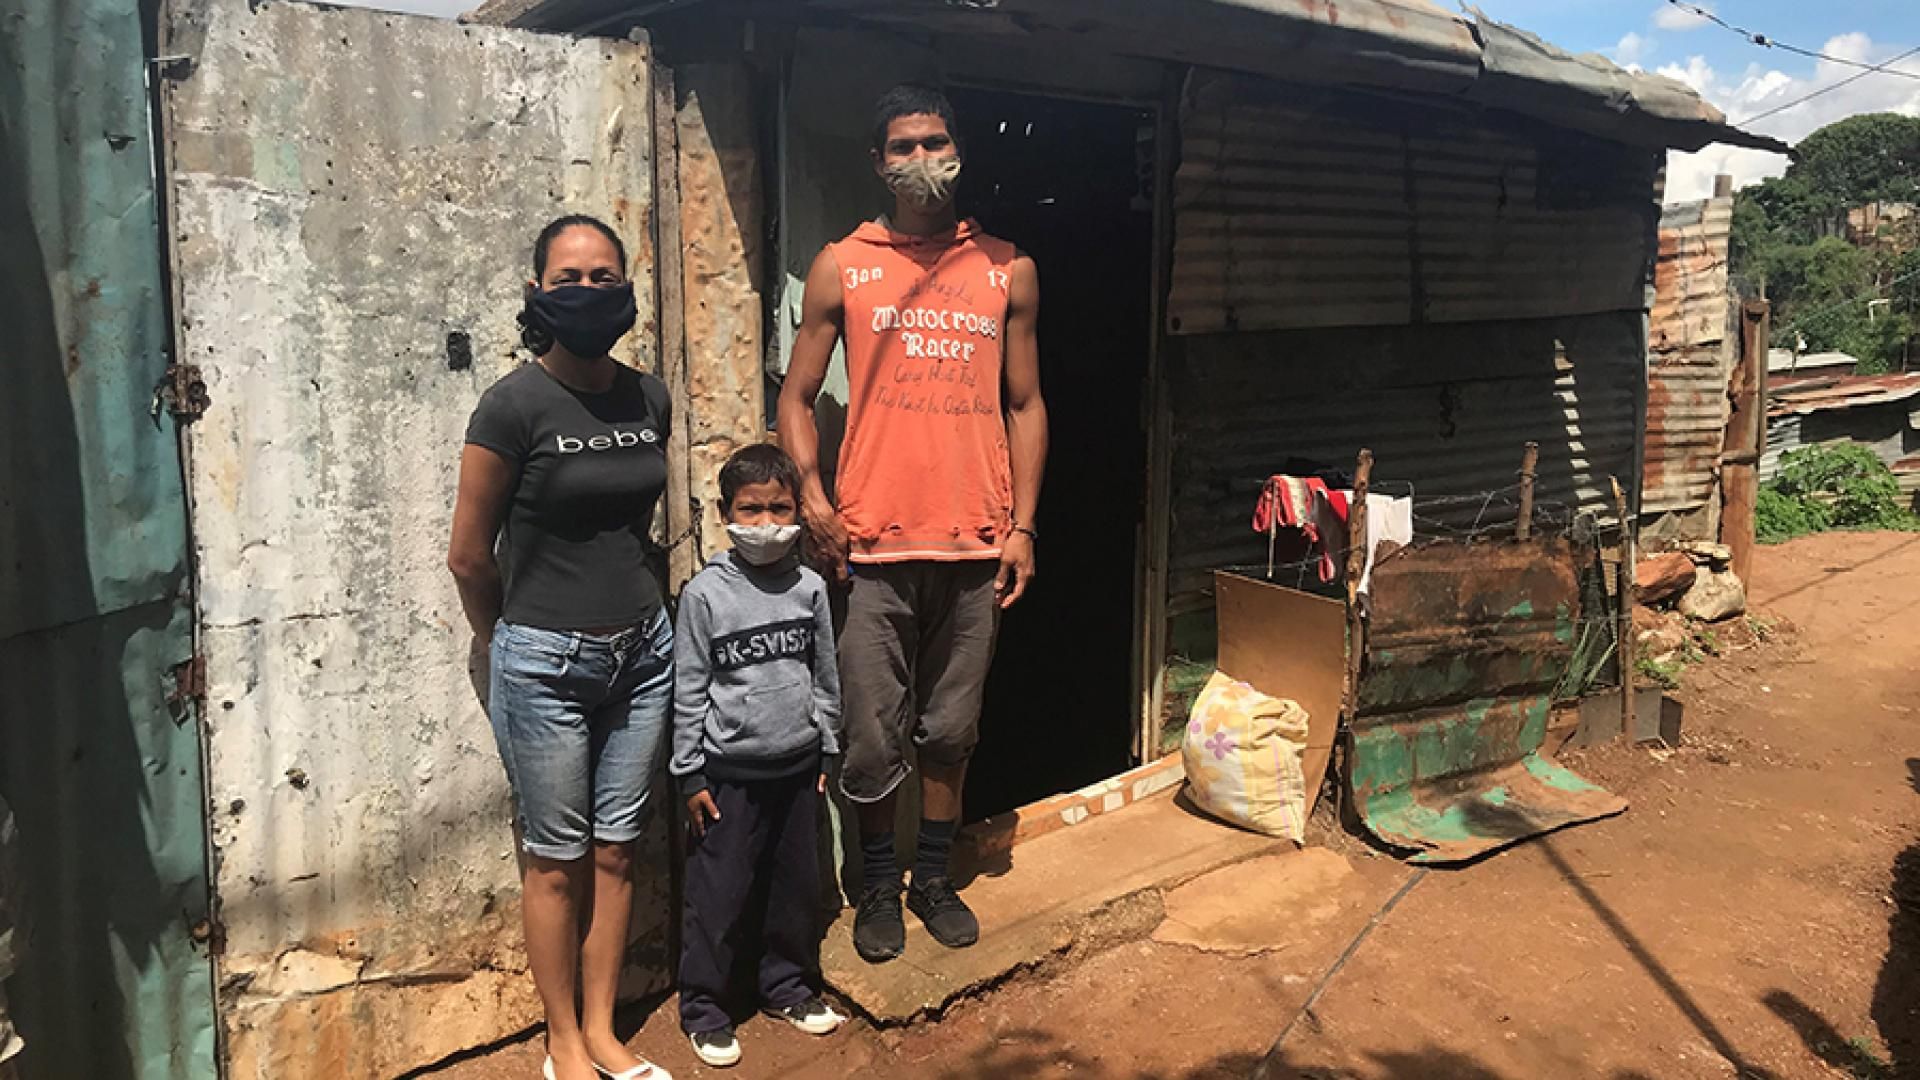 The Contreras Family struggles to have basic access to water, gas and food. As both parents are unemployed, they survive on the food box from the government, which is completely insufficient (La Pastora, at Altos de Lidice community in Caracas).